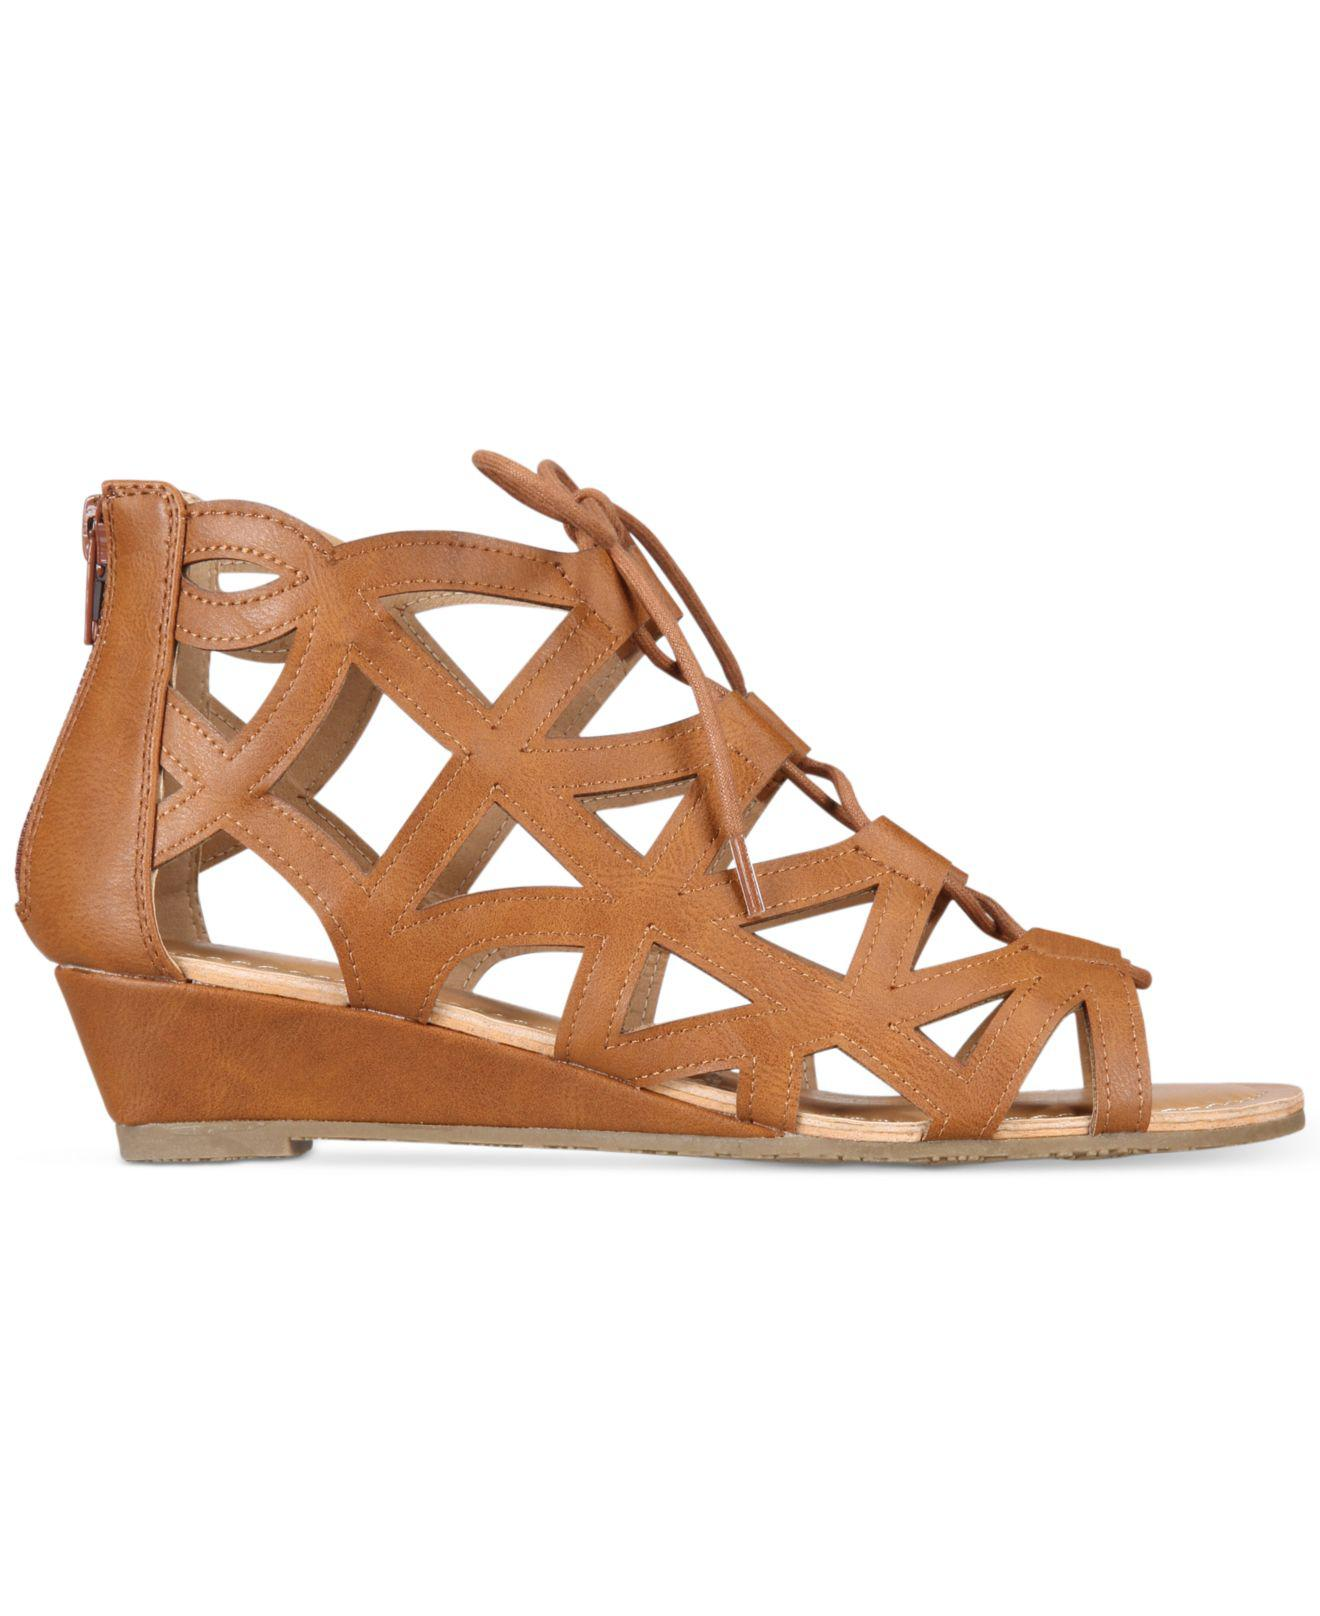 3d308d3fa5 Esprit Cacey Lace-up Wedge Sandals in Brown - Lyst